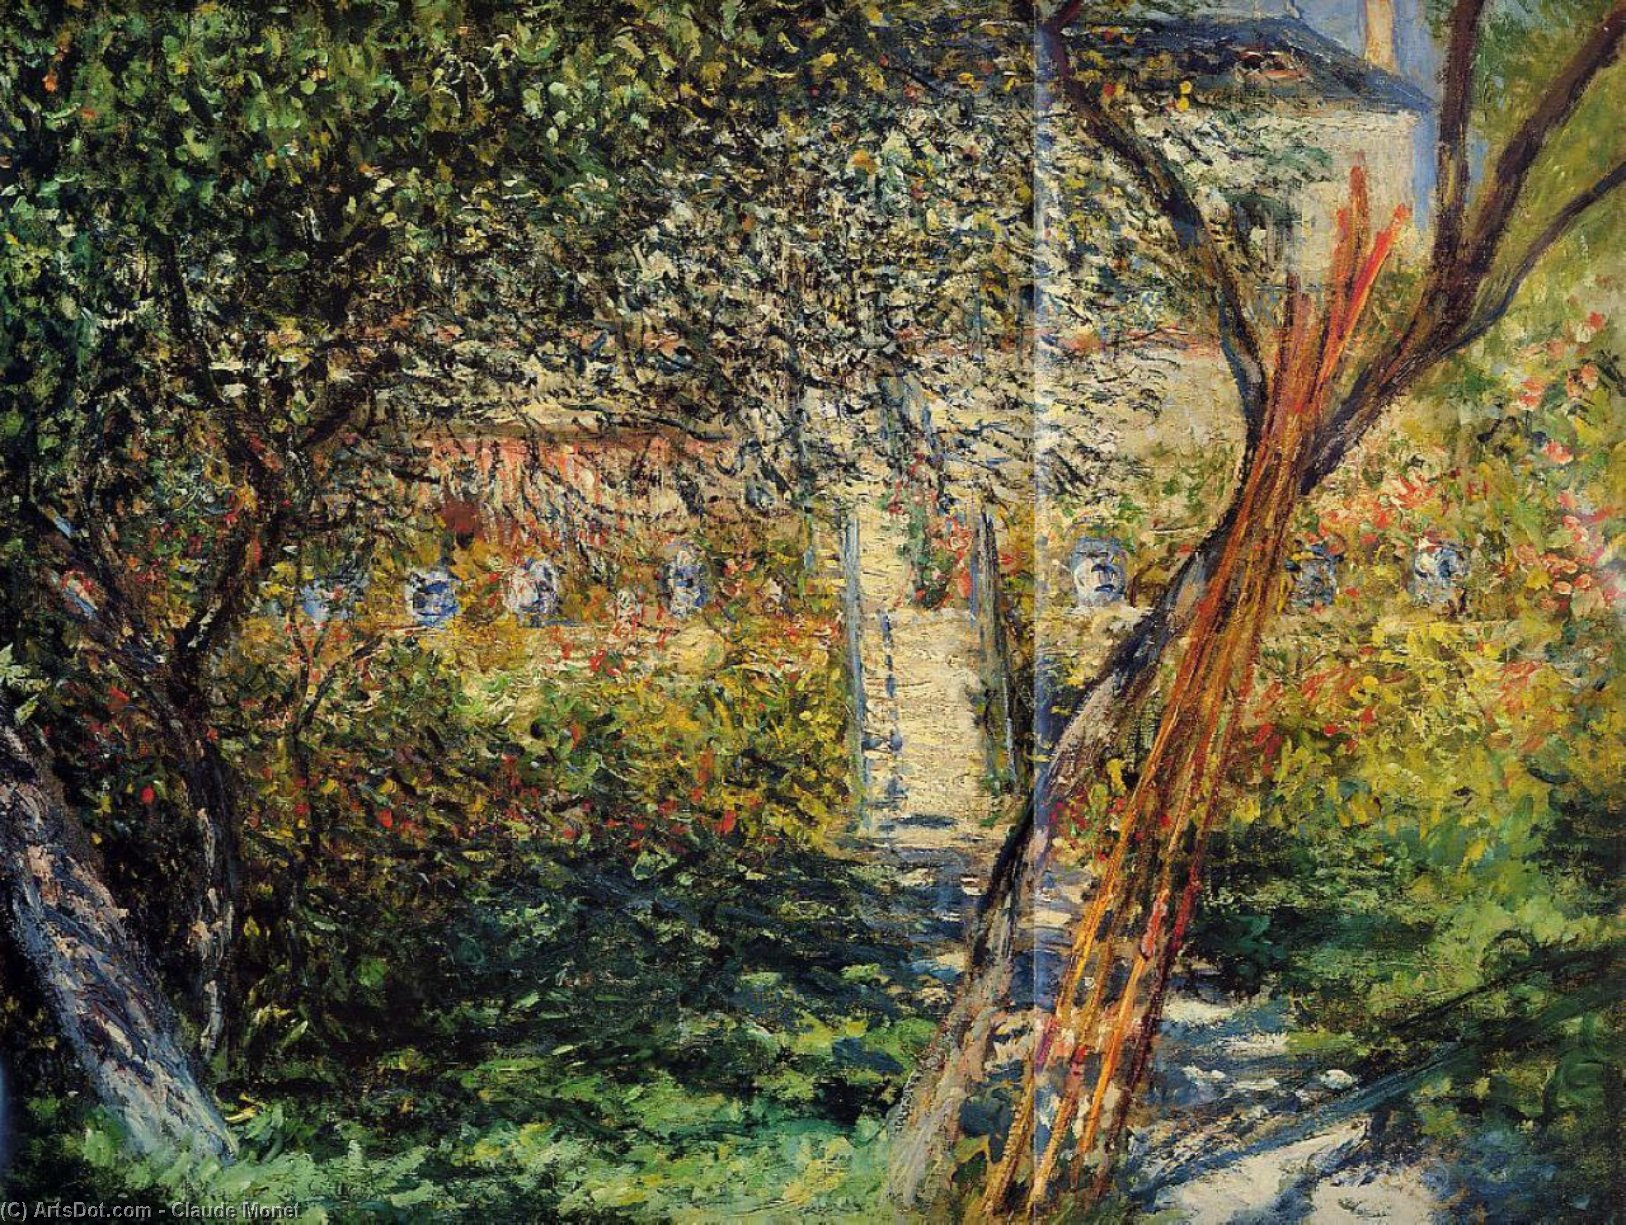 Wikioo.org - The Encyclopedia of Fine Arts - Painting, Artwork by Claude Monet - Monet's Garden at Vetheuil